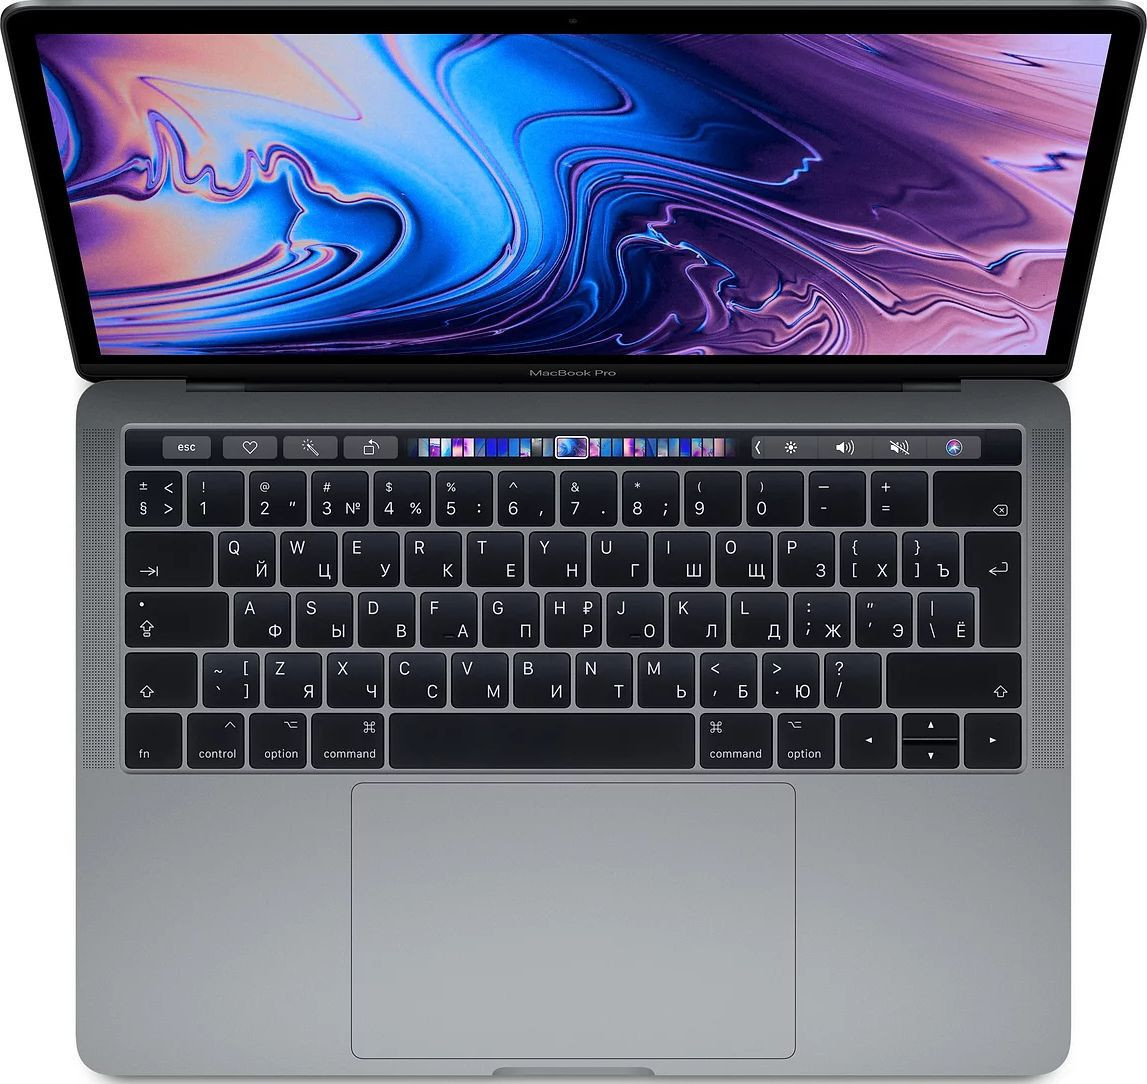 Macbook Pro 13' 2019 i5 512gb touch MV972 Space Gray